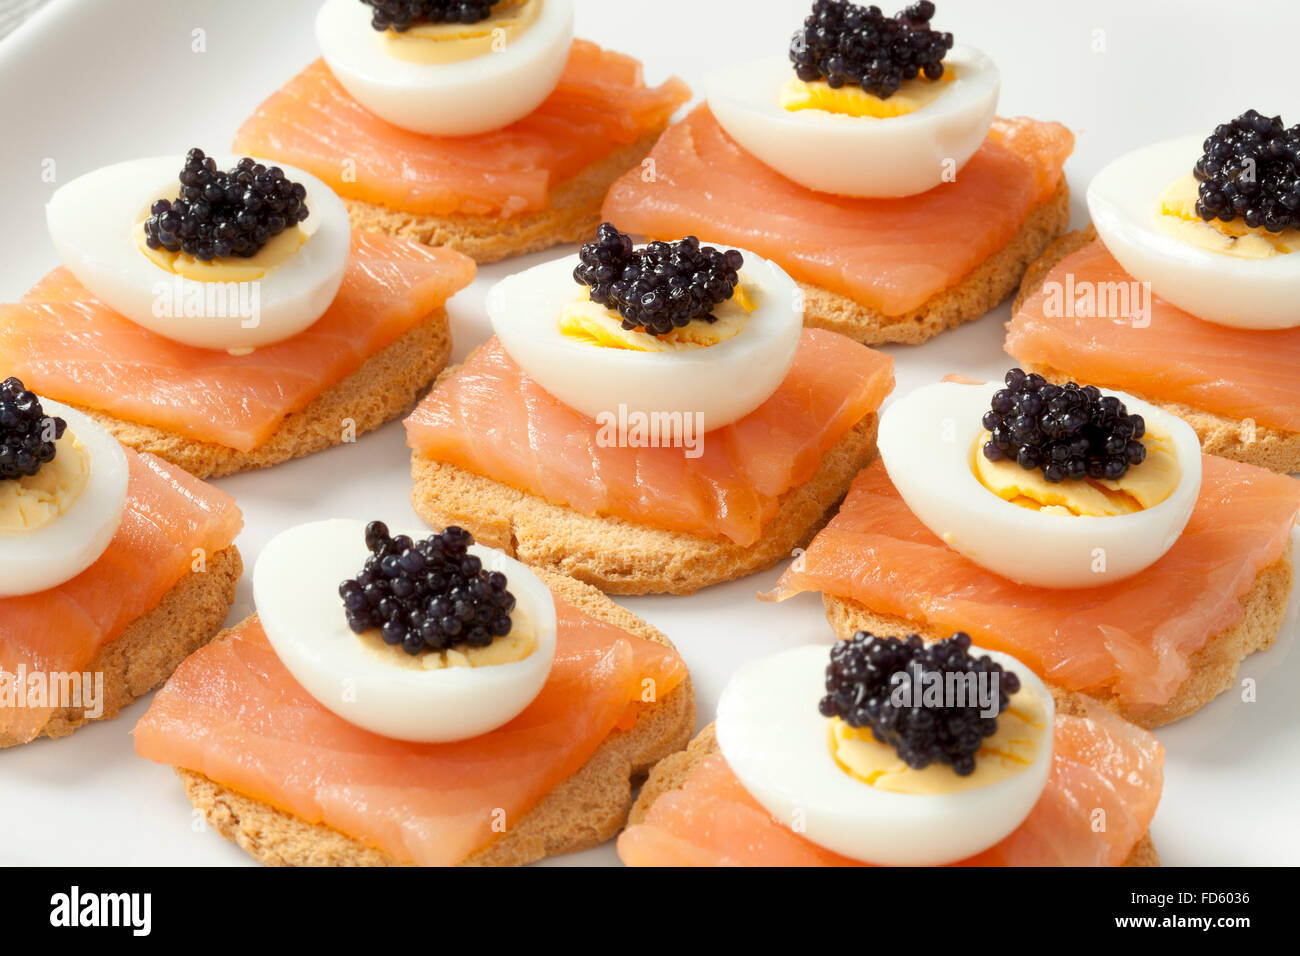 Snack with salmon,quail eggs and lumpfish roe on toast - Stock Image